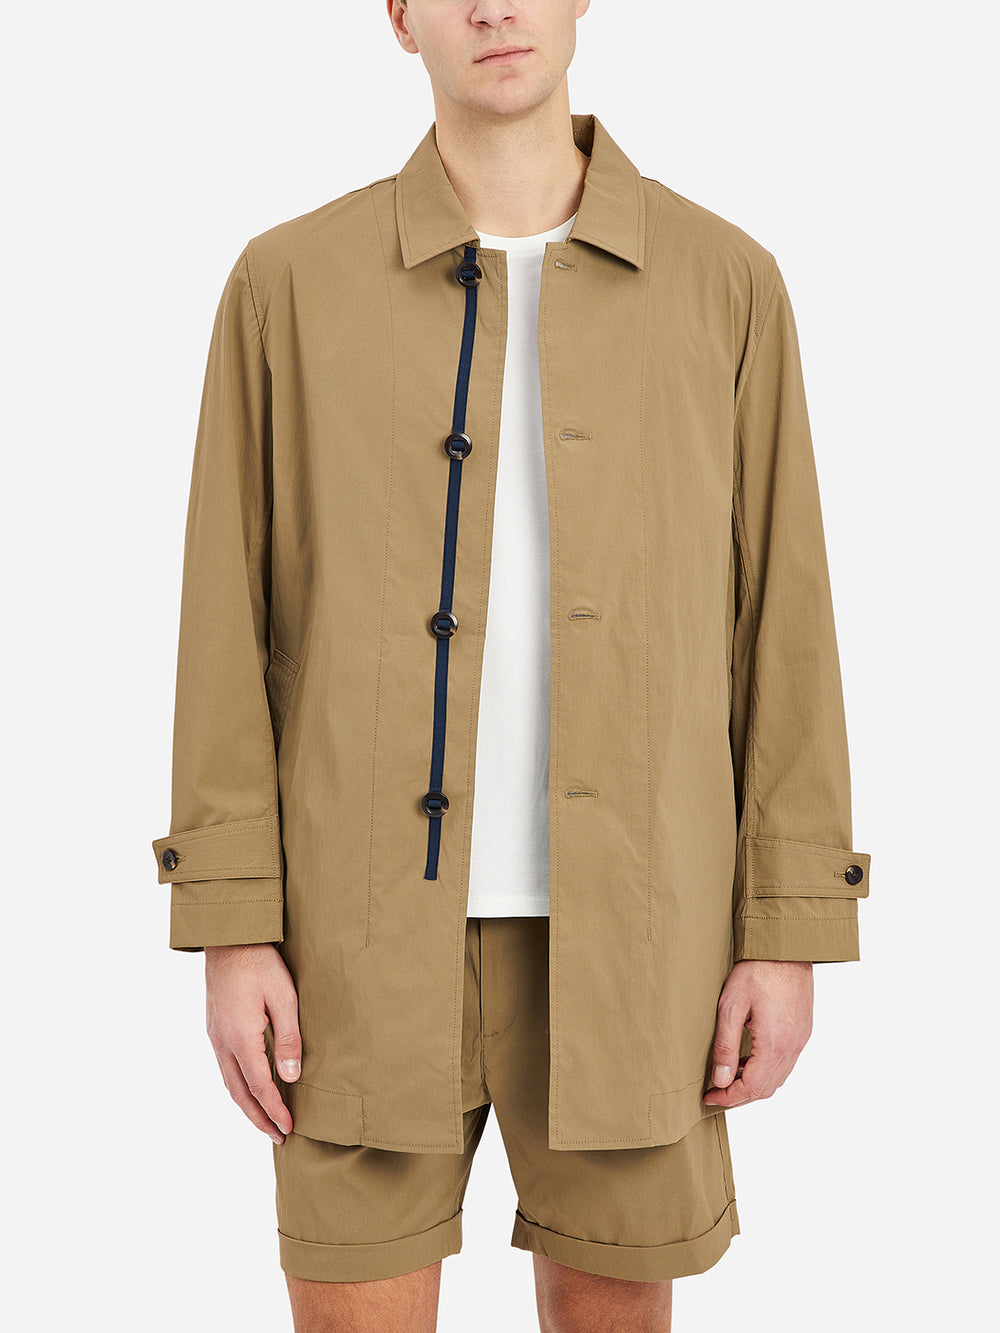 Khaki Marion Trench Men's cotton nylon coats ONS Clothing